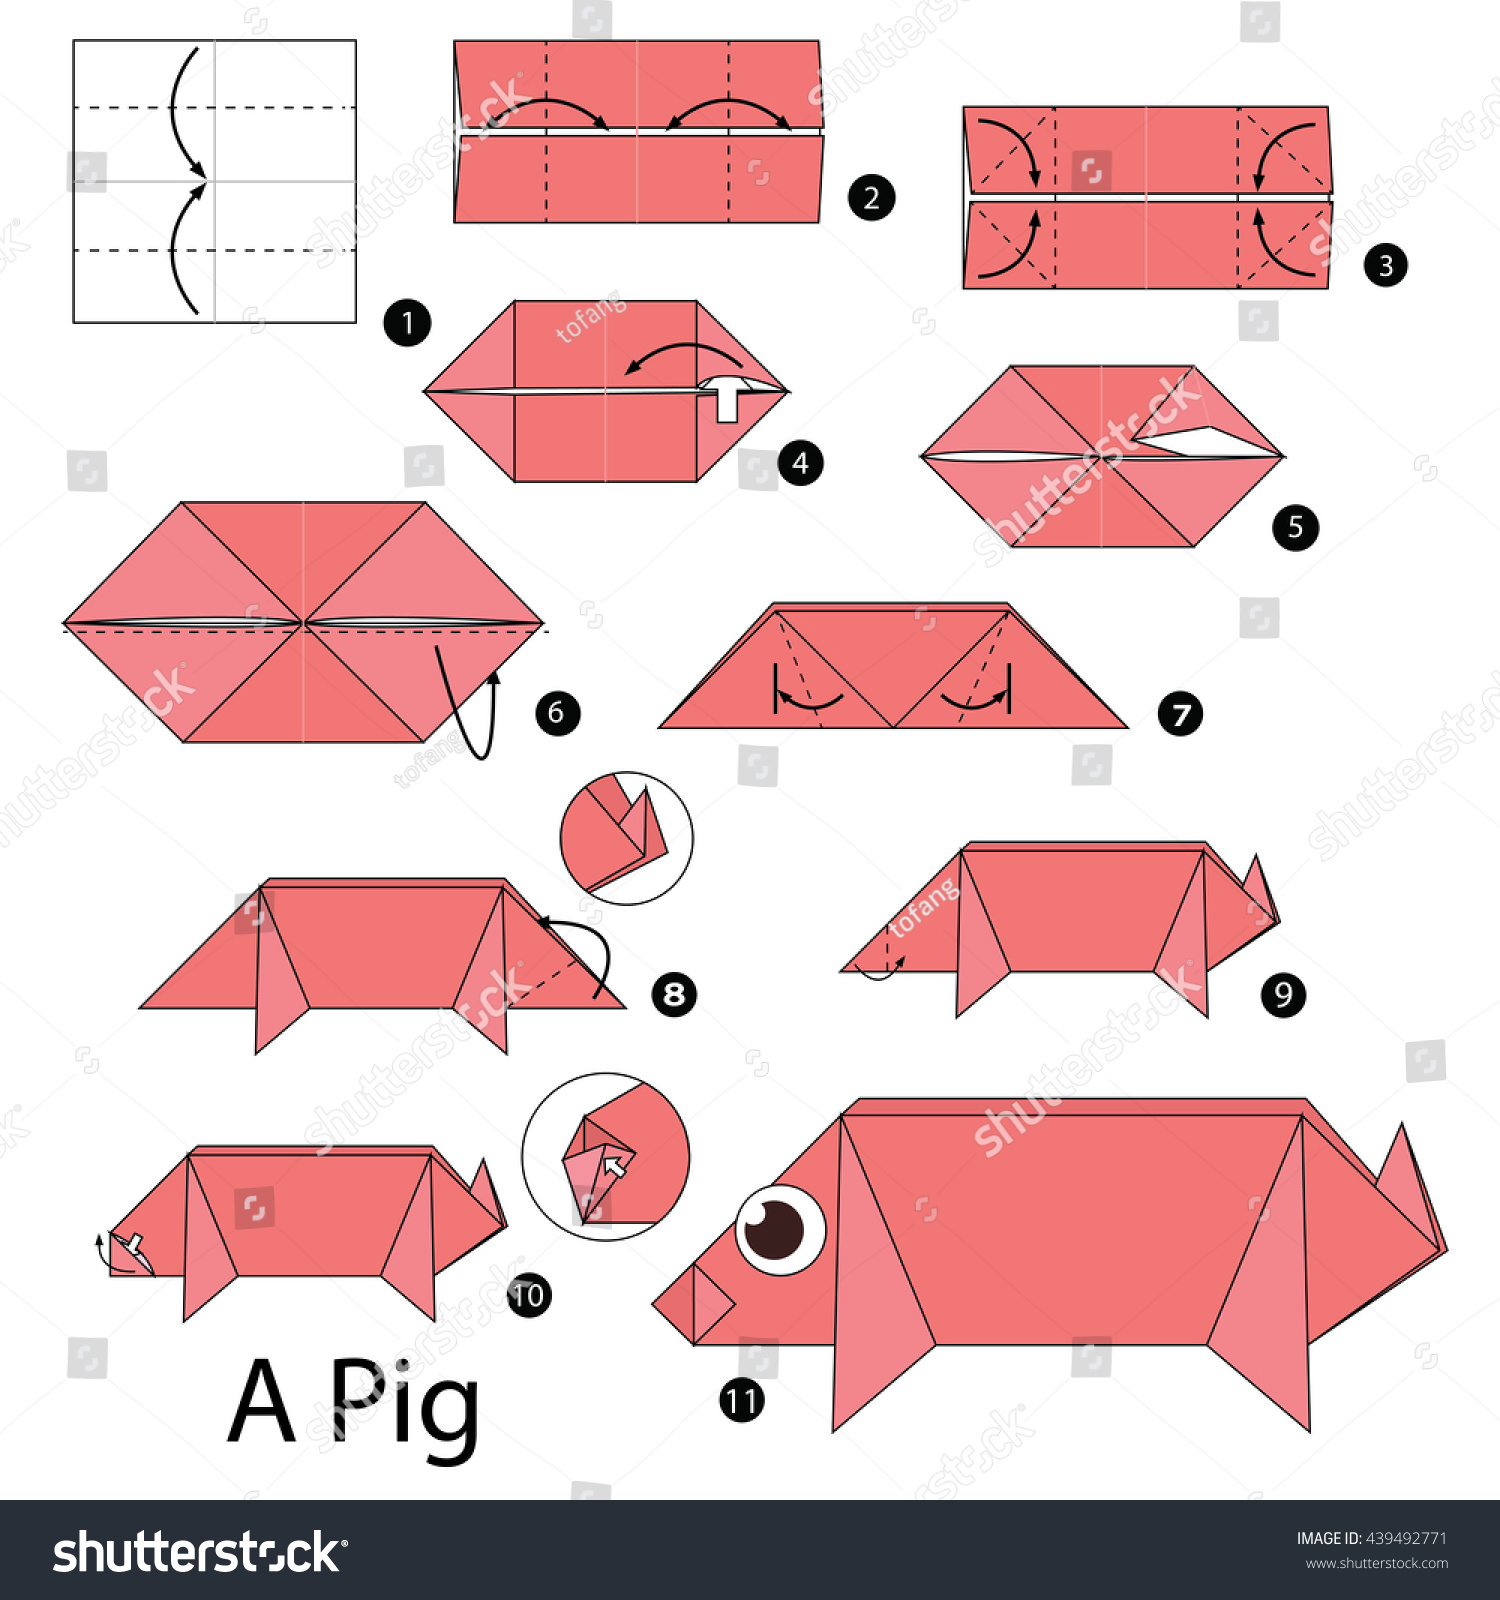 How to make a traditional origami pig: page 1   1600x1500